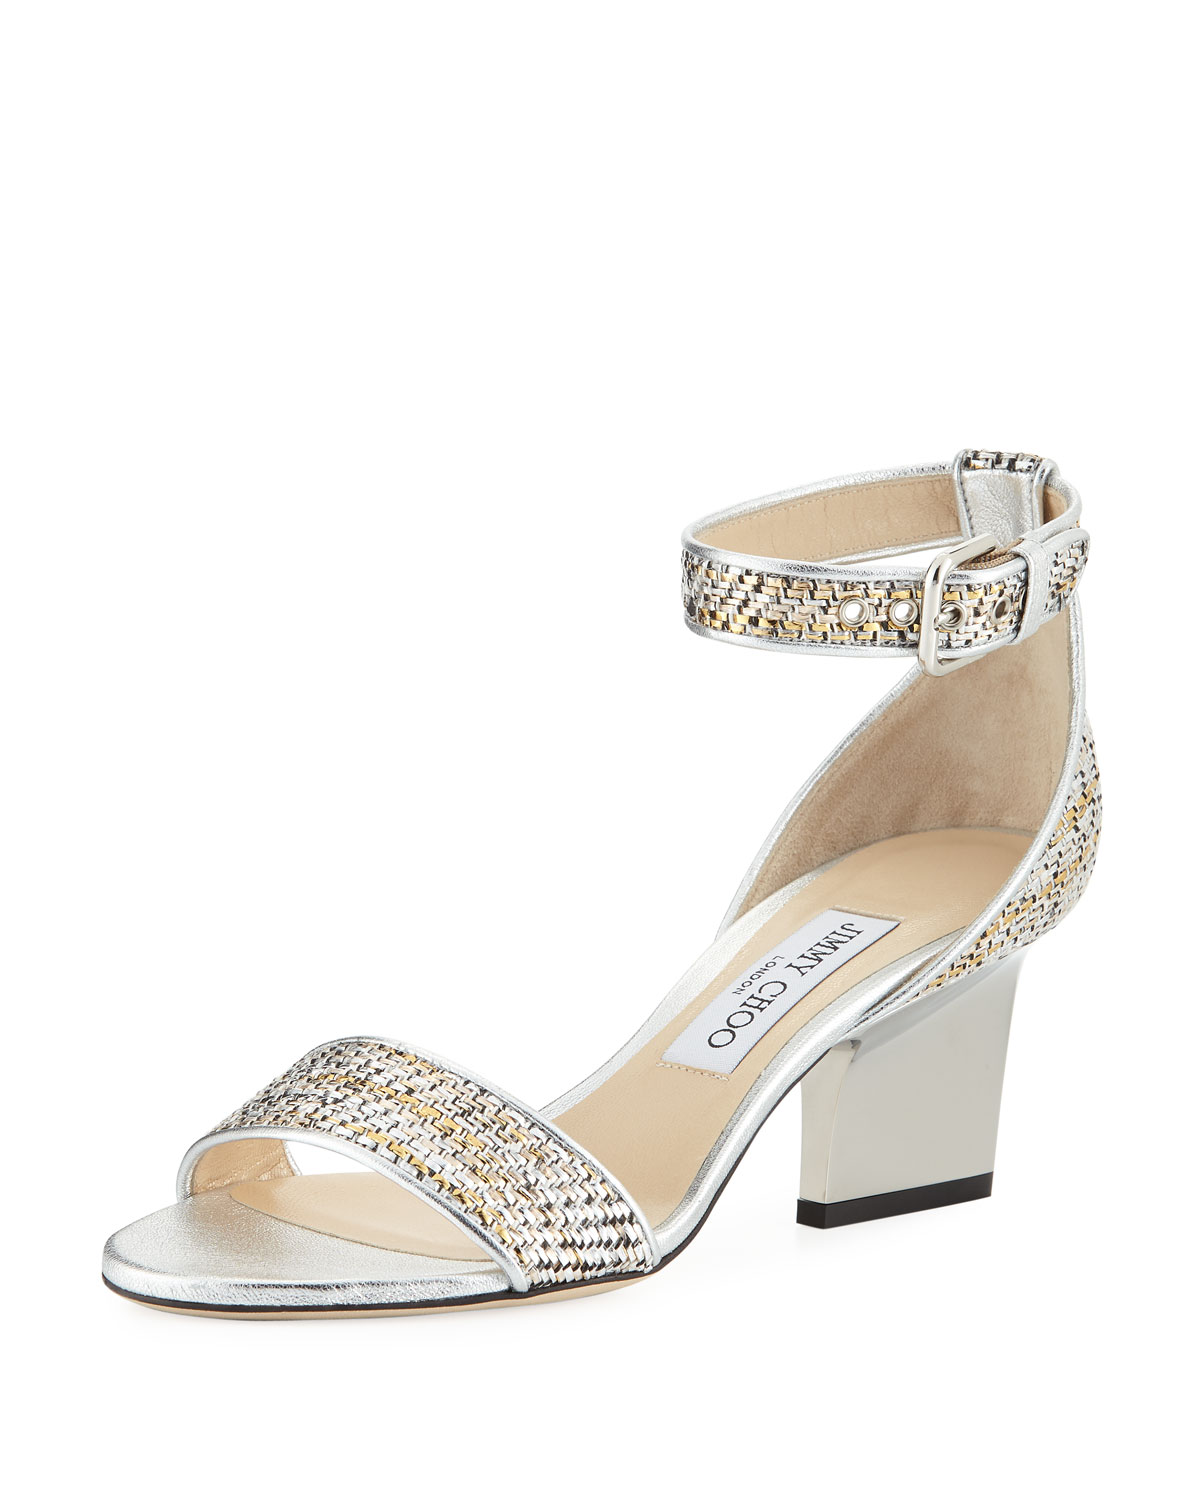 77fd64cad2c1 Jimmy Choo Edina 65mm Woven Metallic Sandal